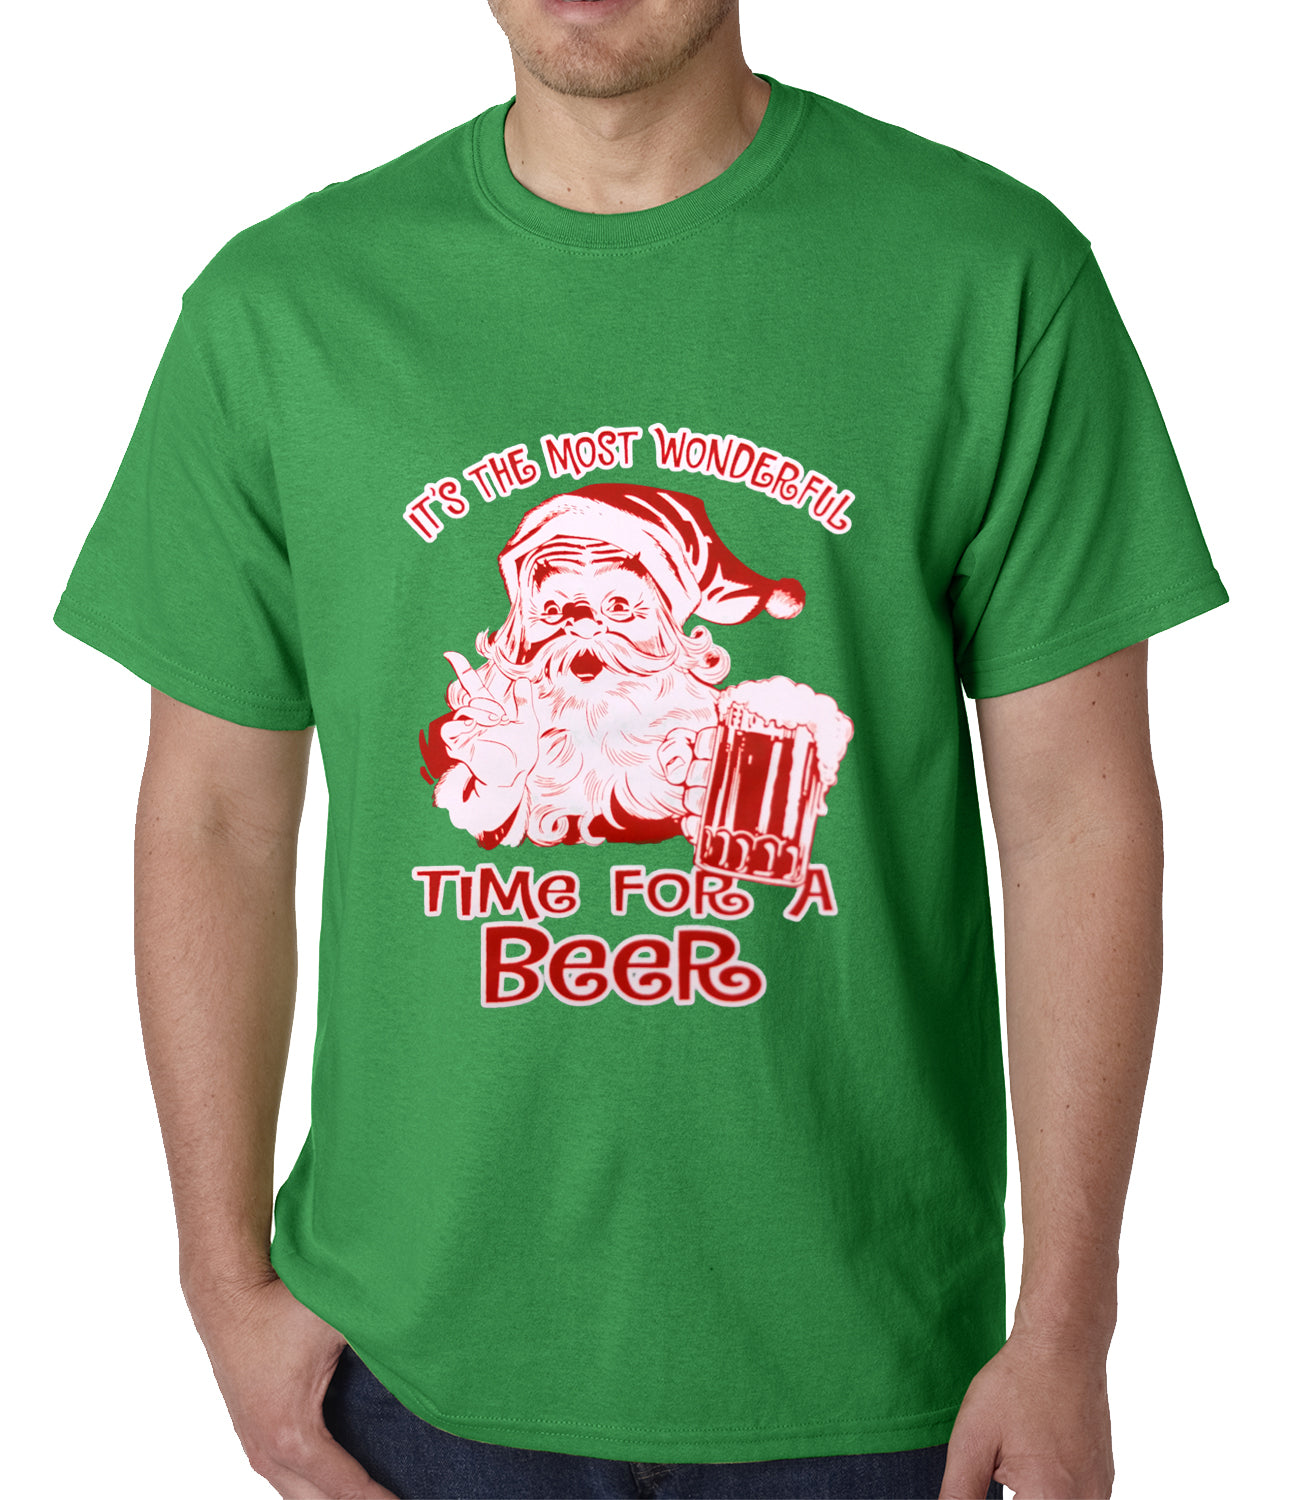 c4717015c It's The Most Wonderful Time for a Beer Funny Christmas Mens T-shirt ...